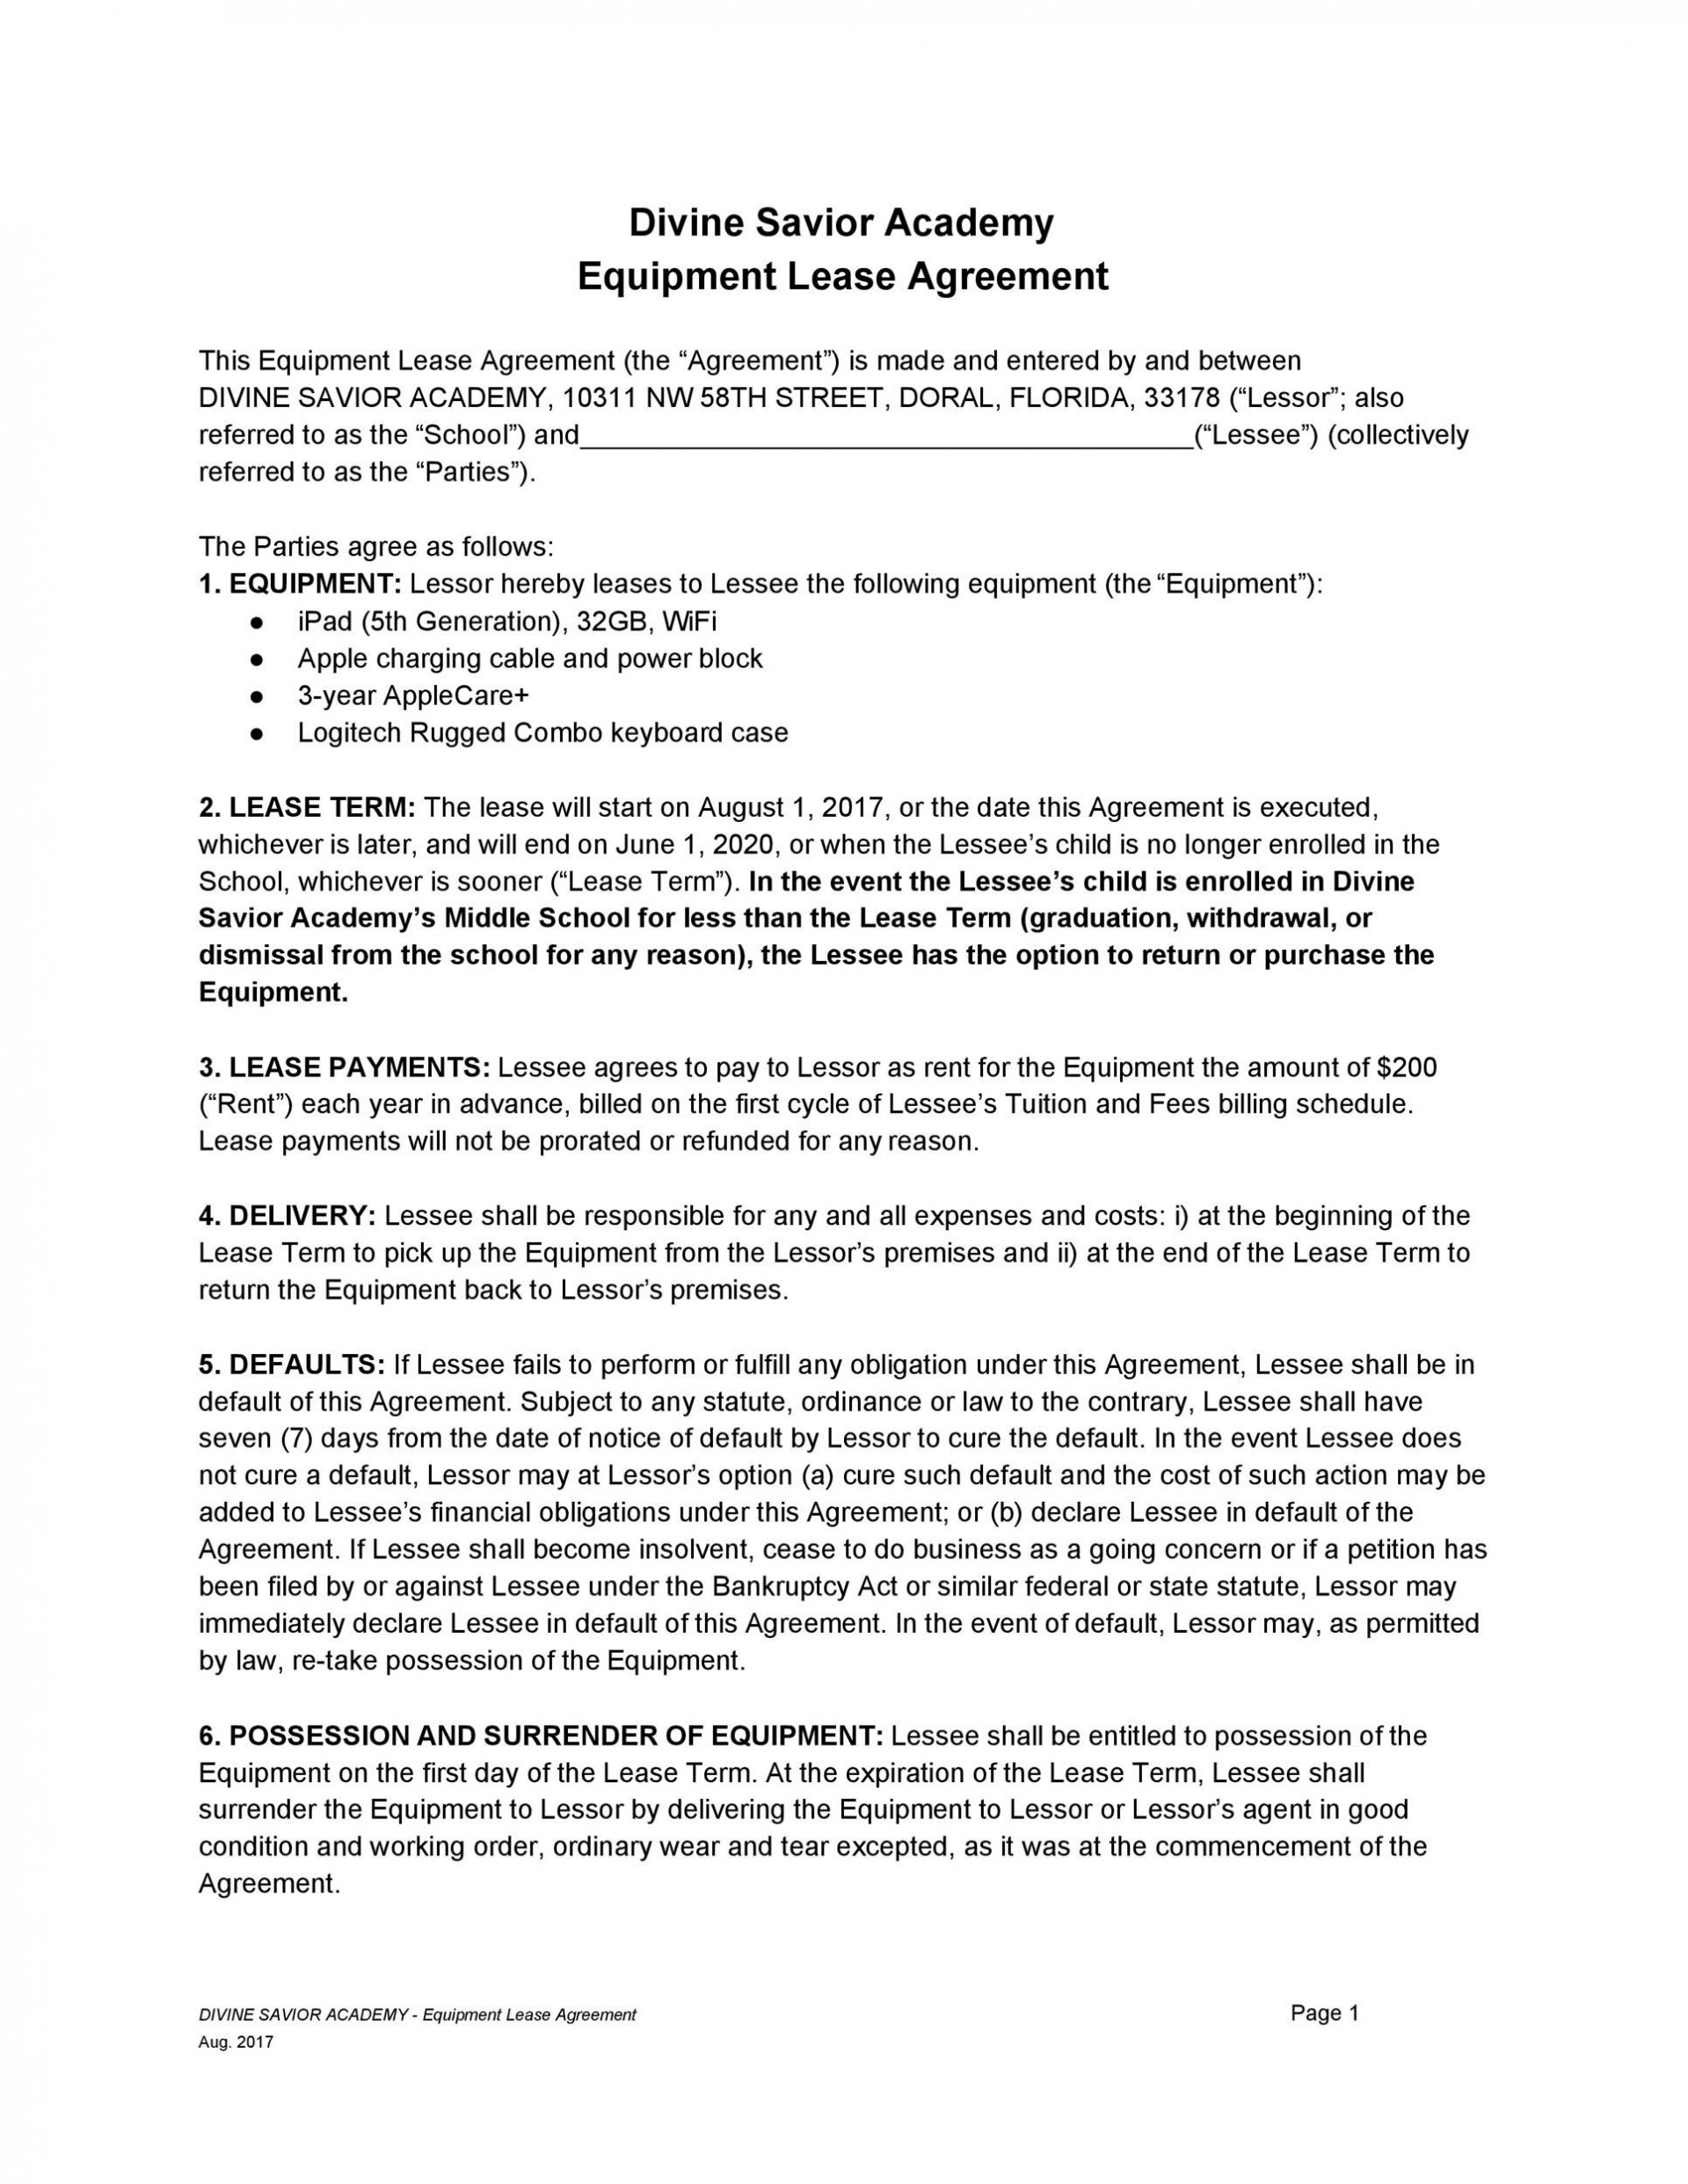 006 Awful Equipment Lease Contract Template Free High Definition  Agreement Word1920